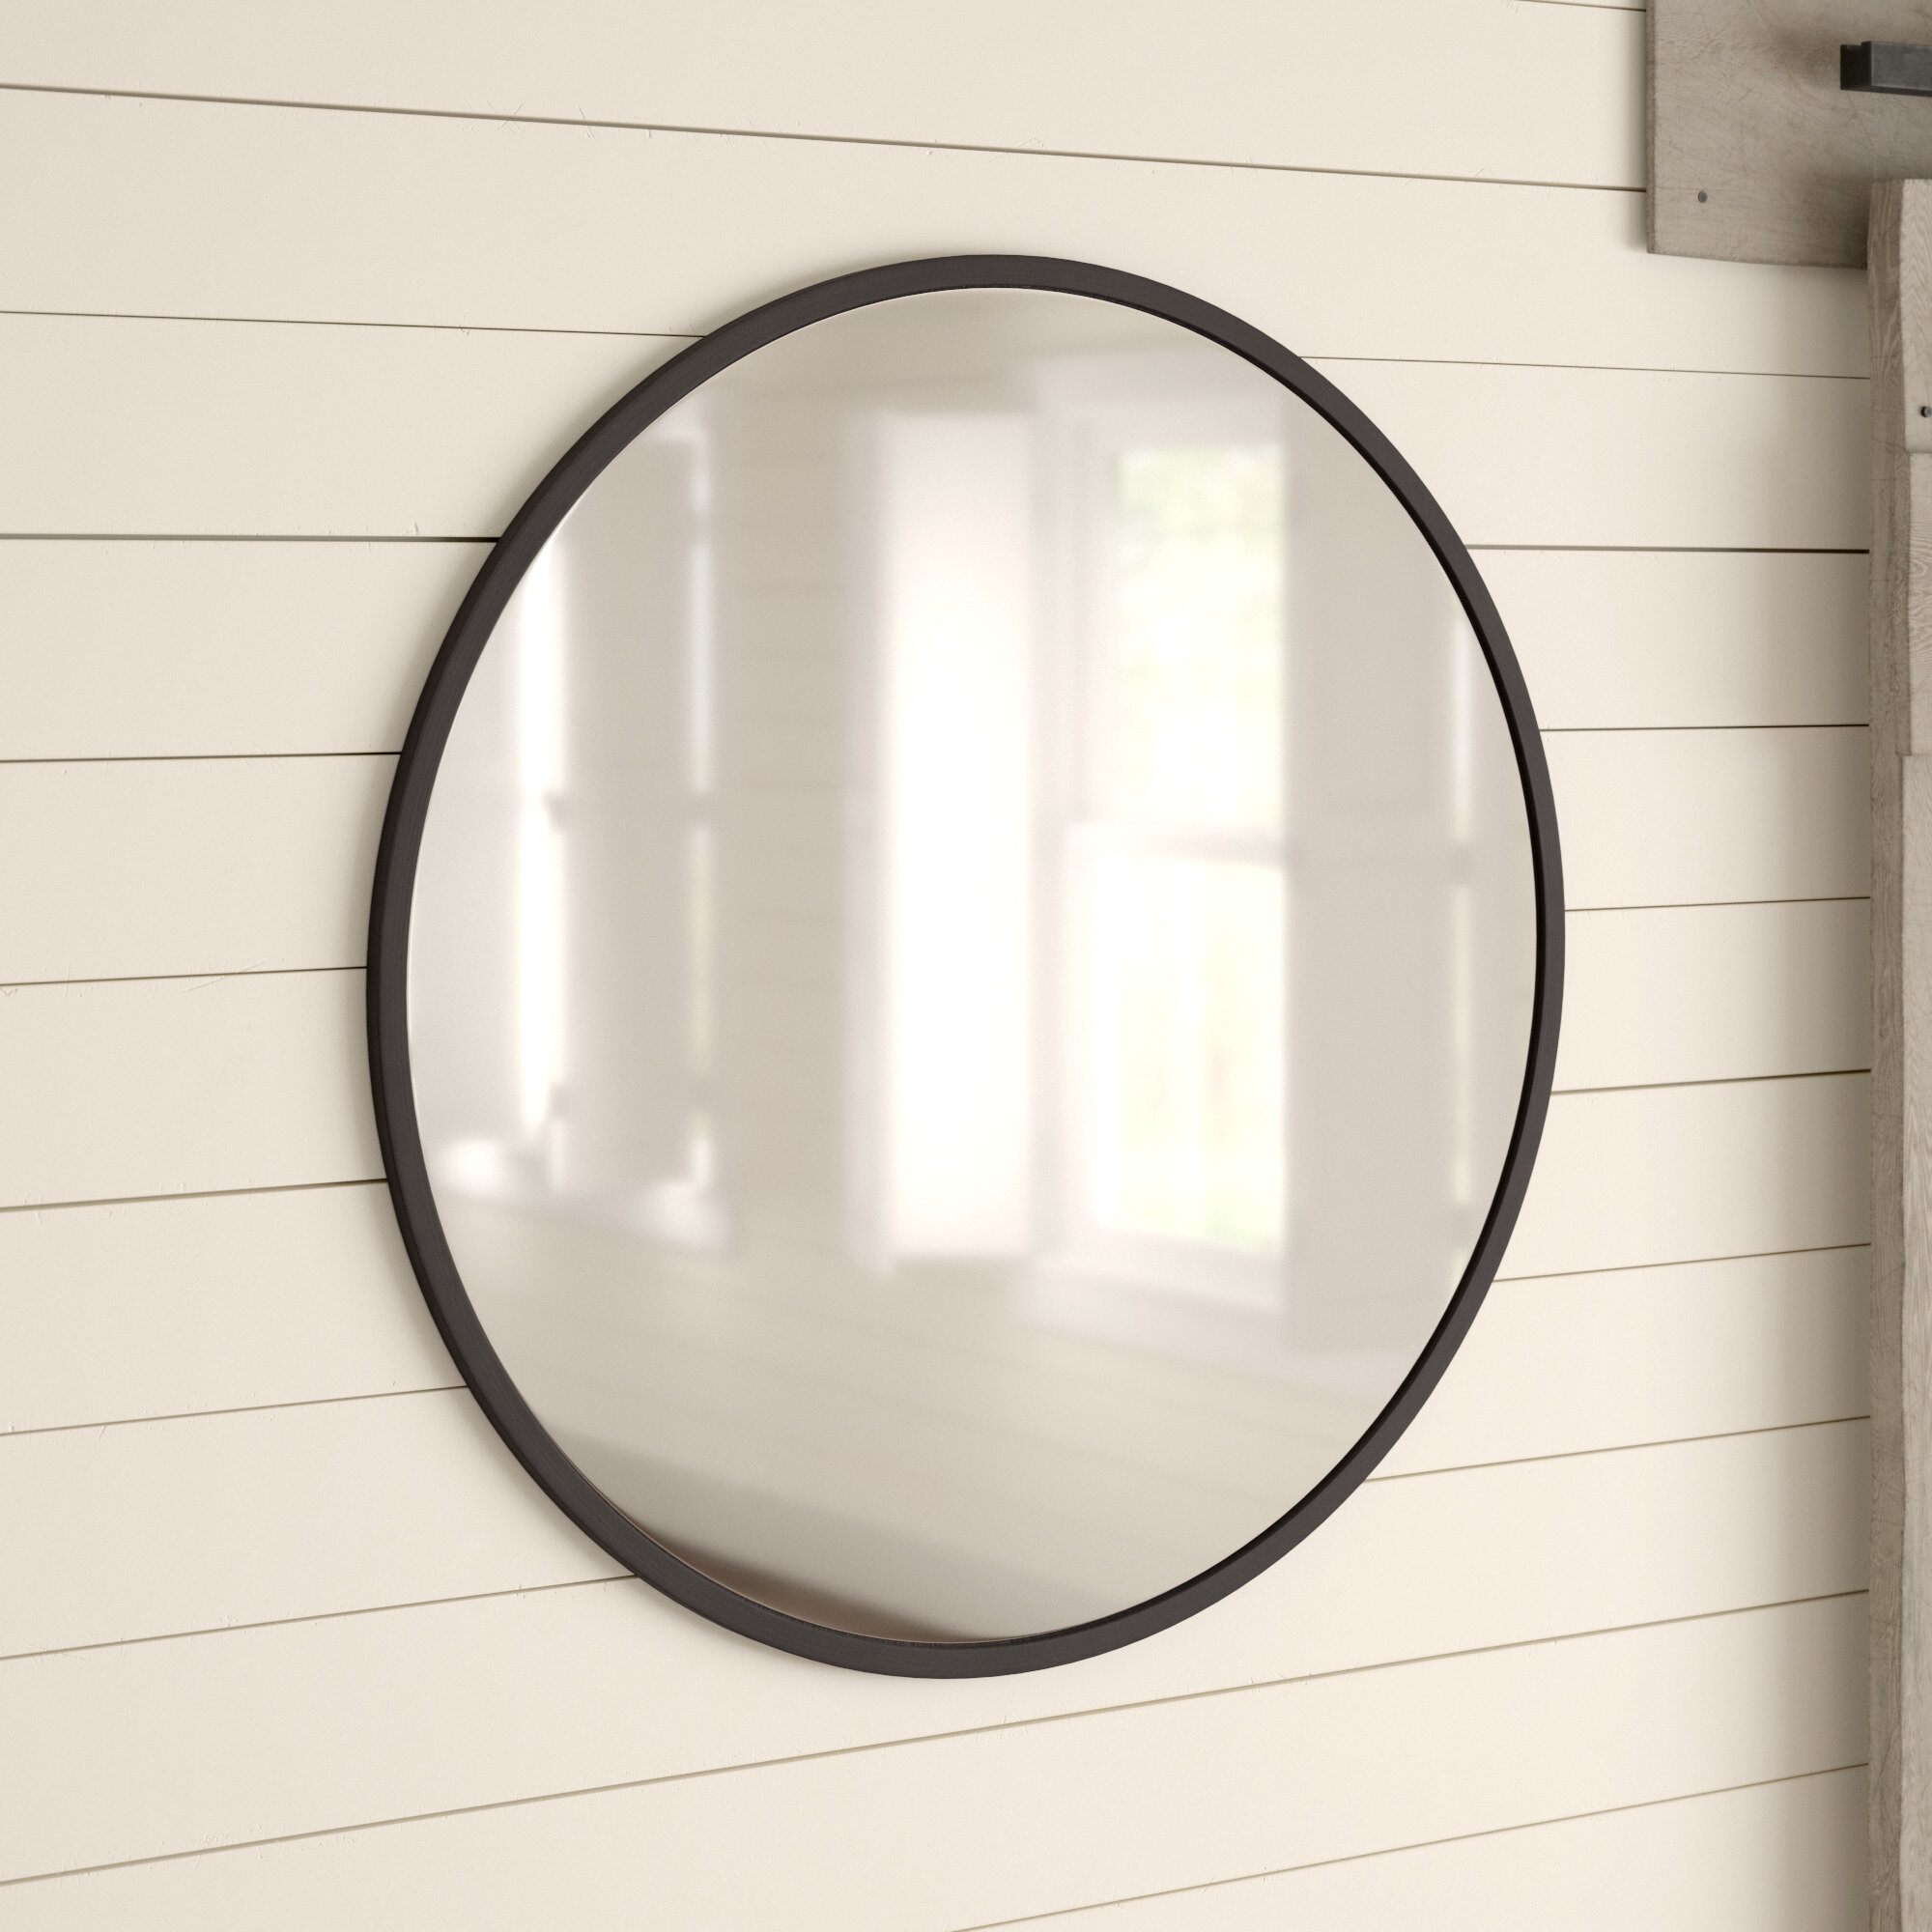 Farmhouse & Rustic Mirrors Sale | Birch Lane Intended For Knott Modern & Contemporary Accent Mirrors (Image 8 of 20)